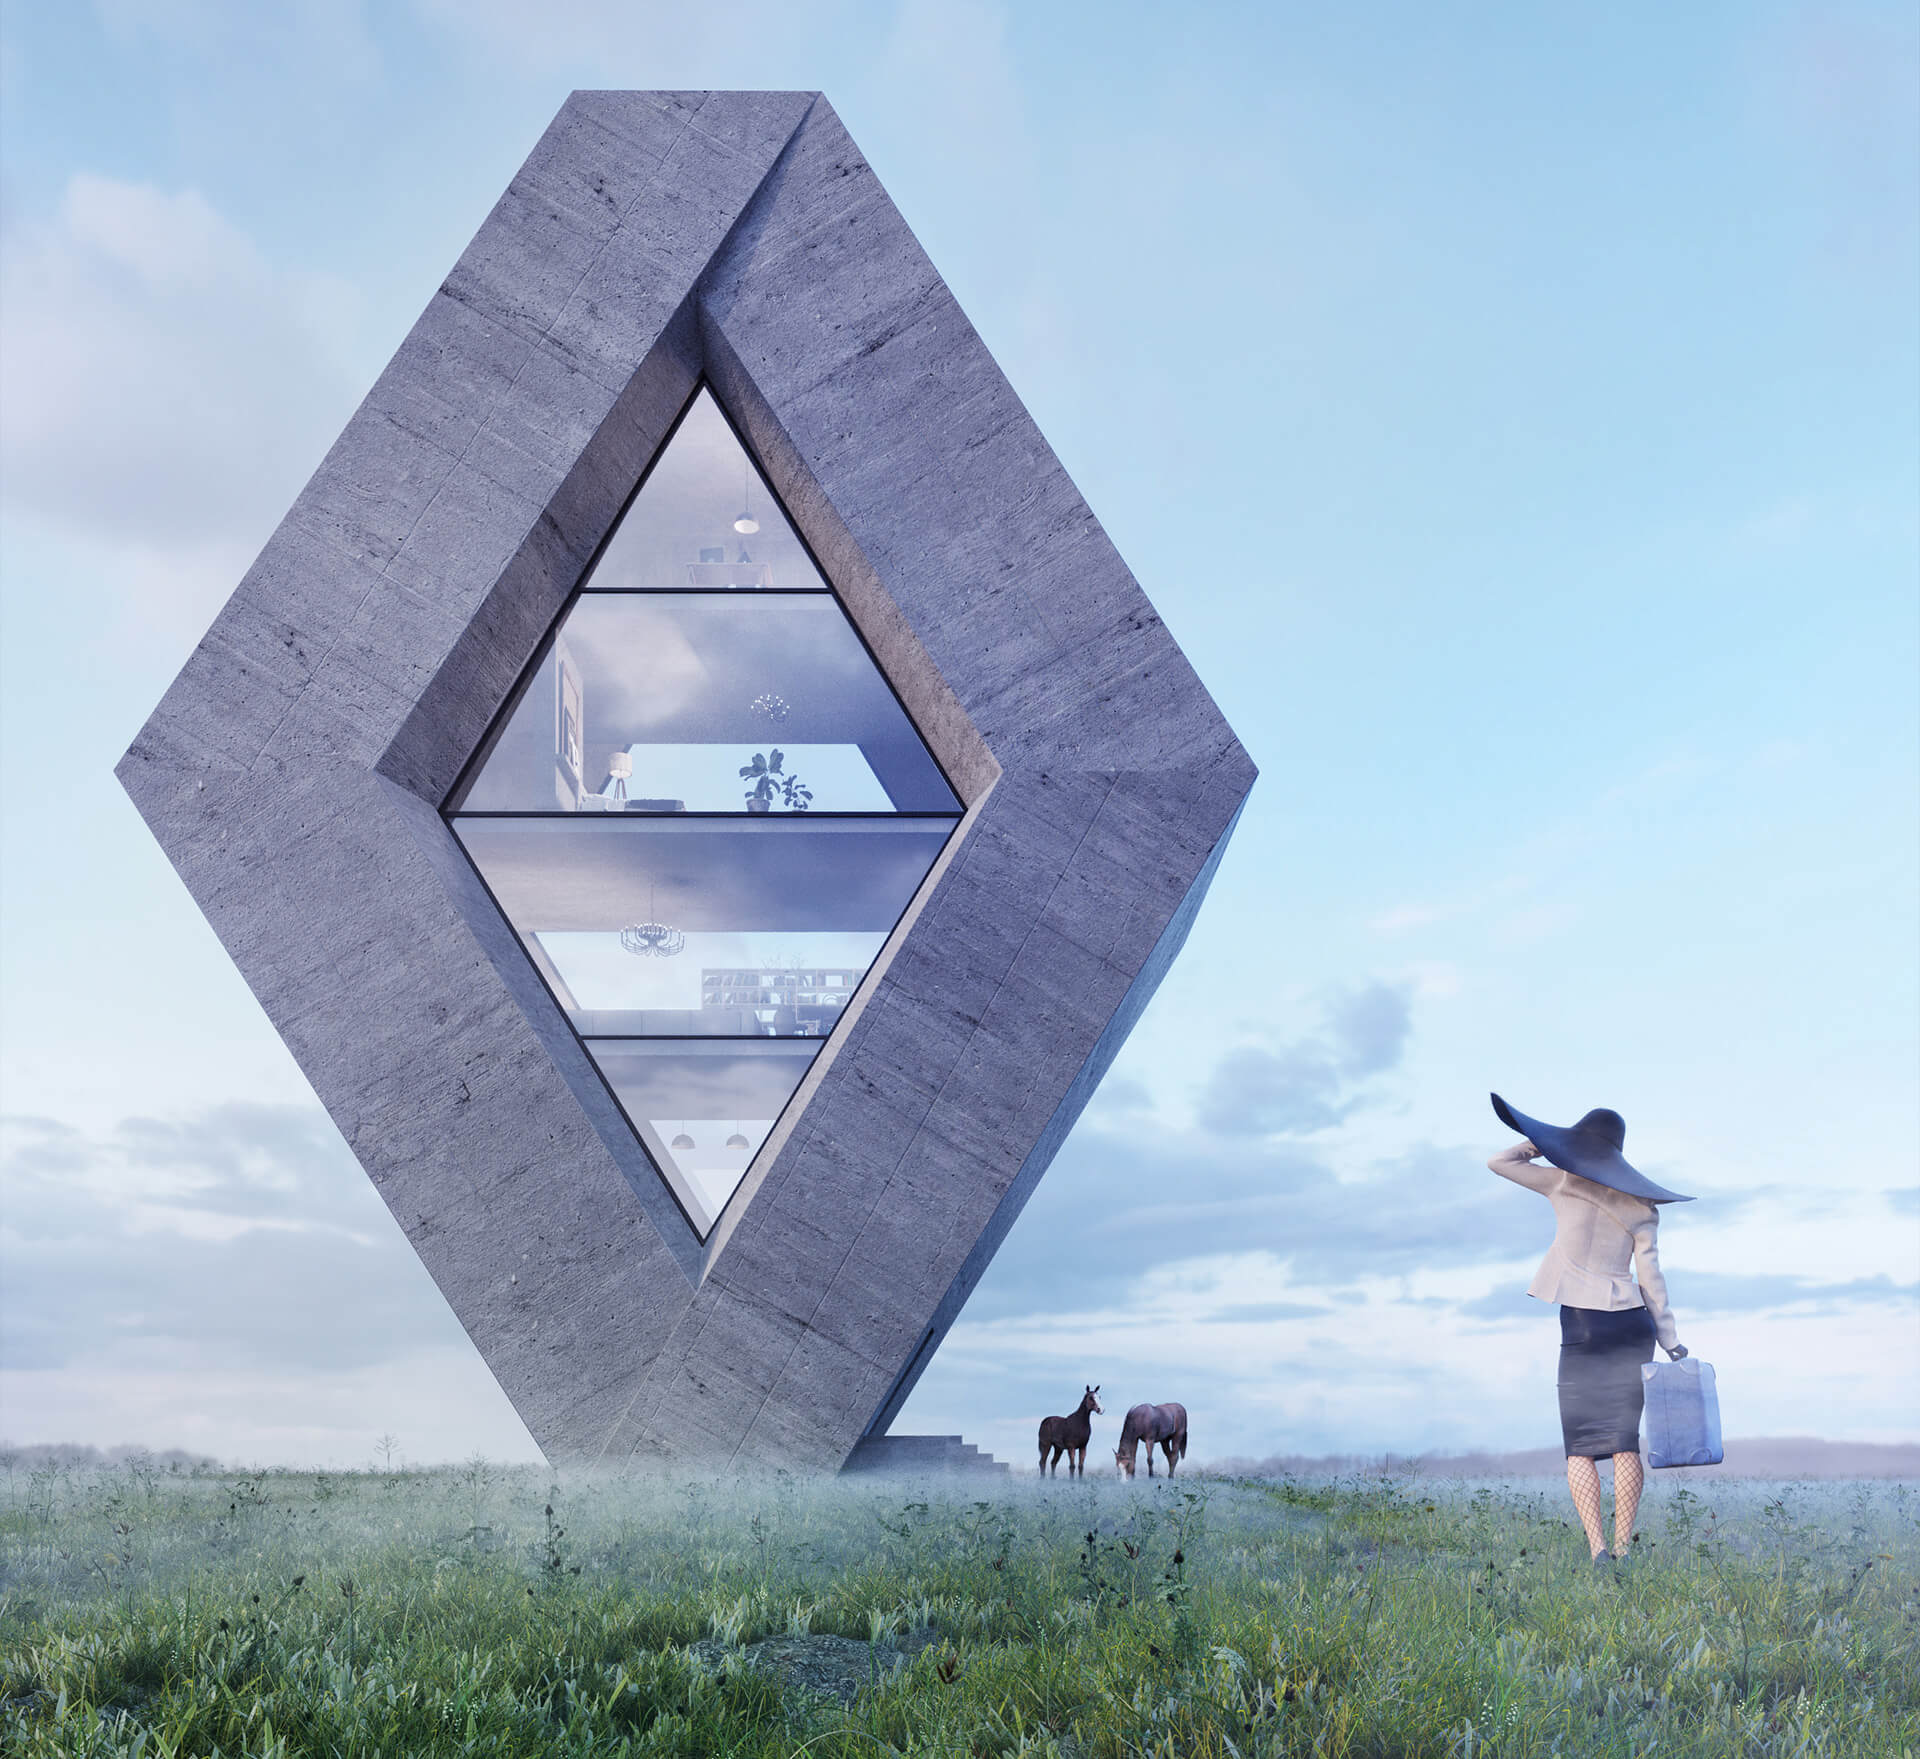 Rhombhouse is inspired by the diamond shaped Renault logo | Karina Wiciak of Wamhouse Studio conceptualises house designs inspired by brand logos | STIRworld